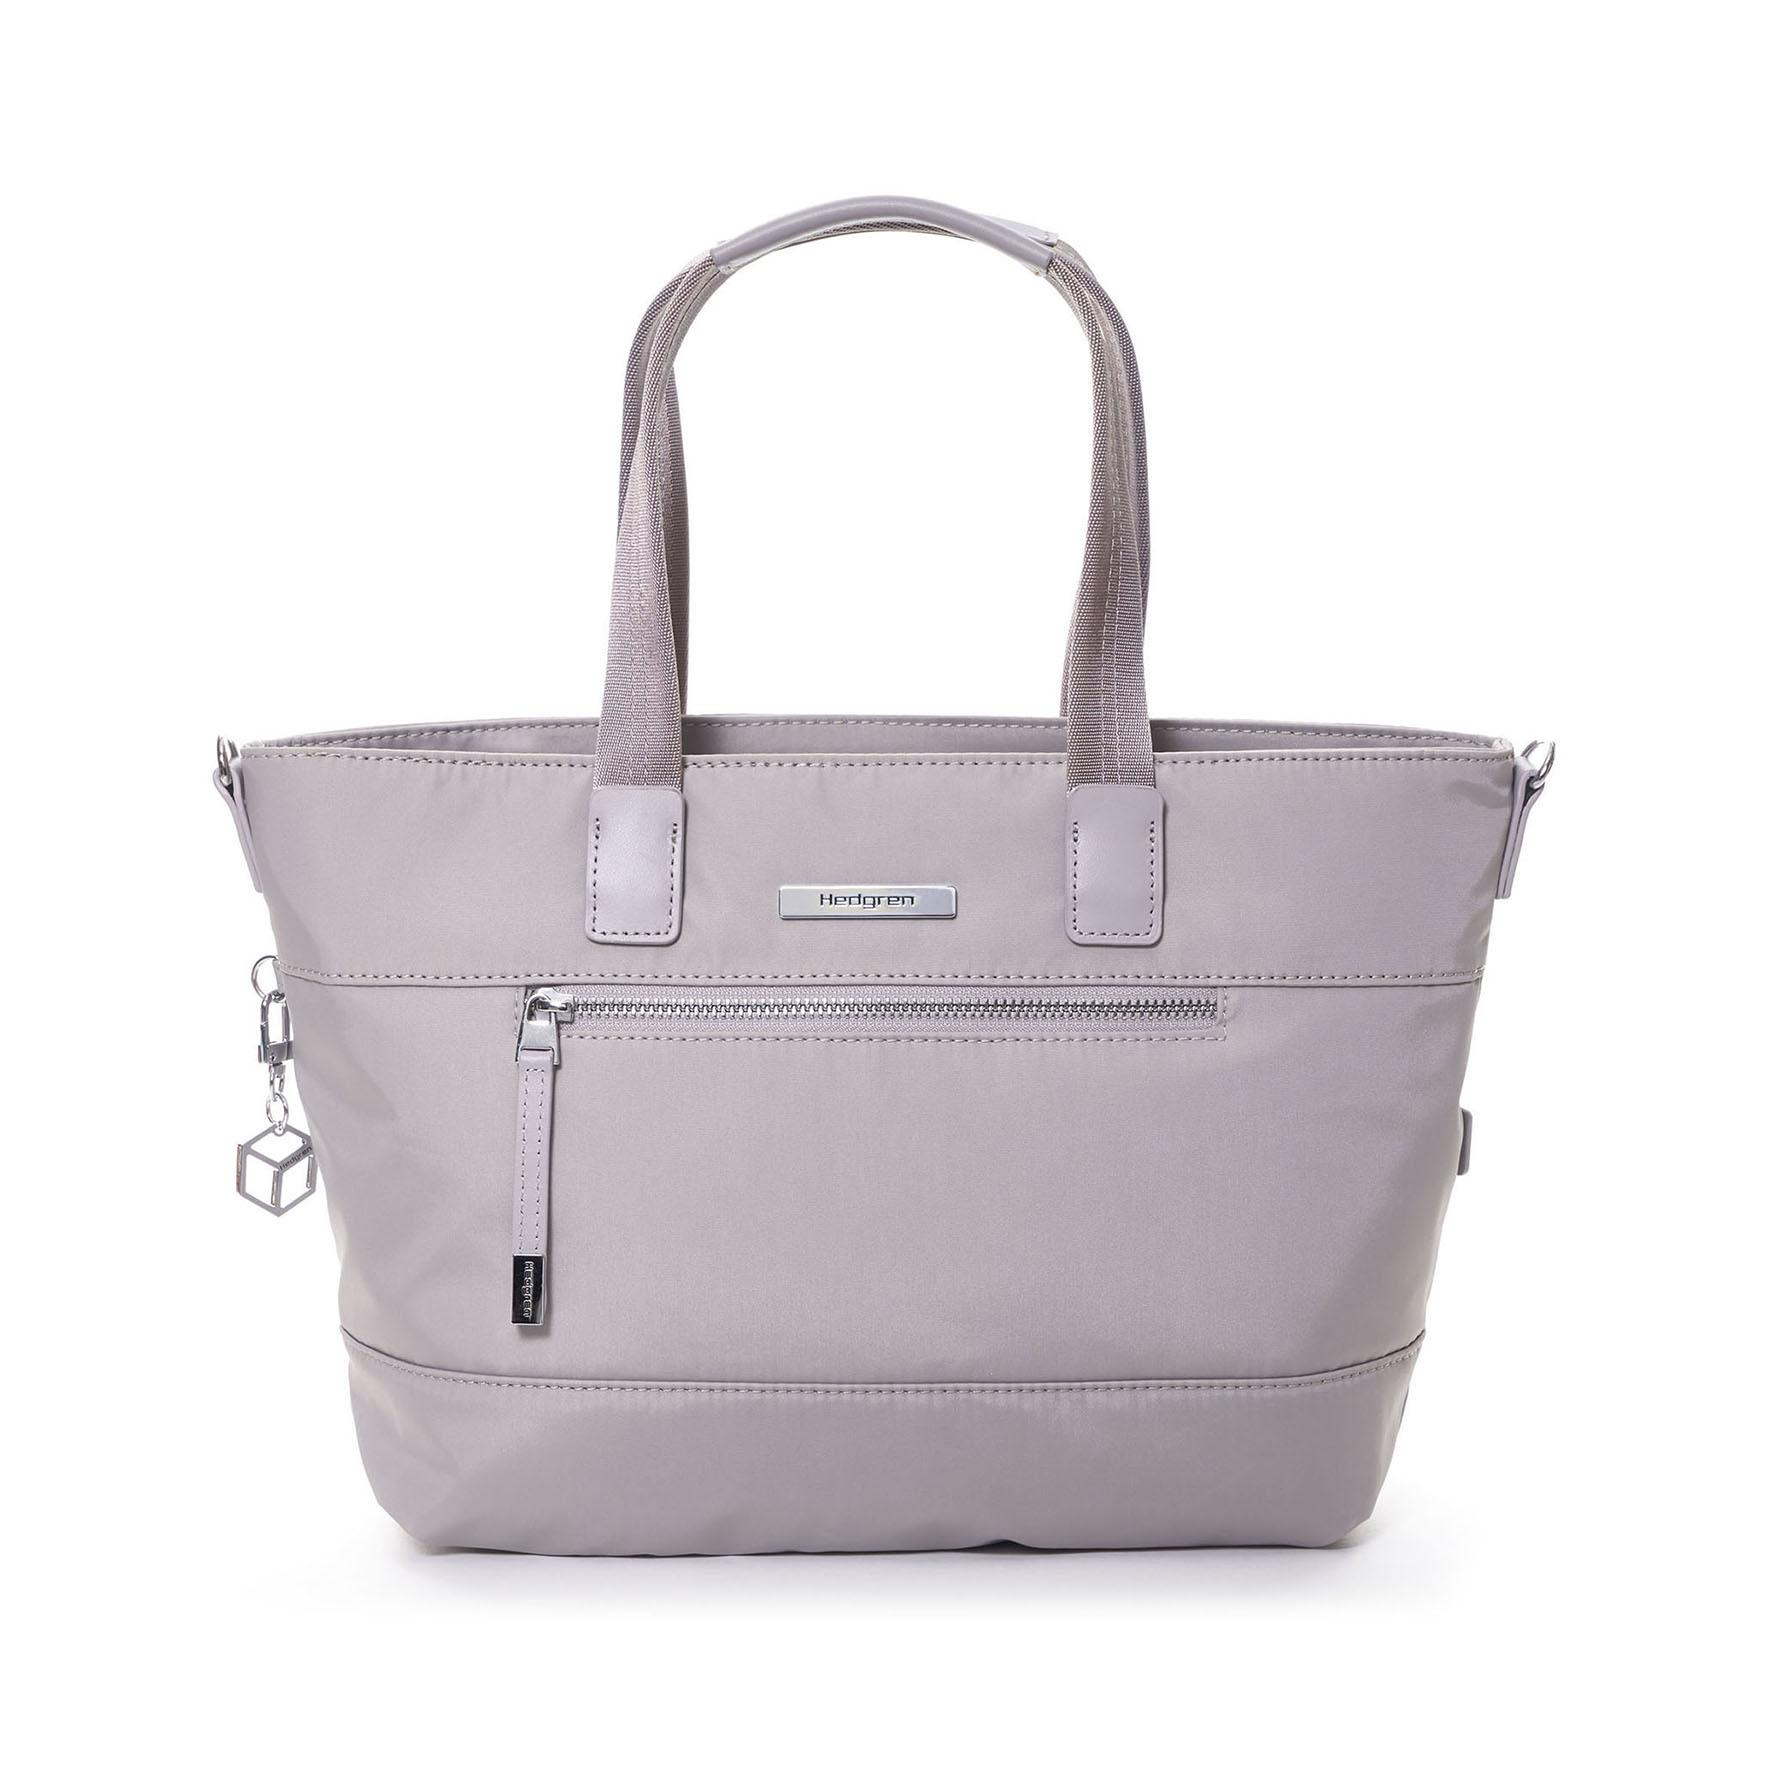 Buy PUMA,Remax,Hedgren Women Tote Bags at Best Prices Online in ... aa8533f130